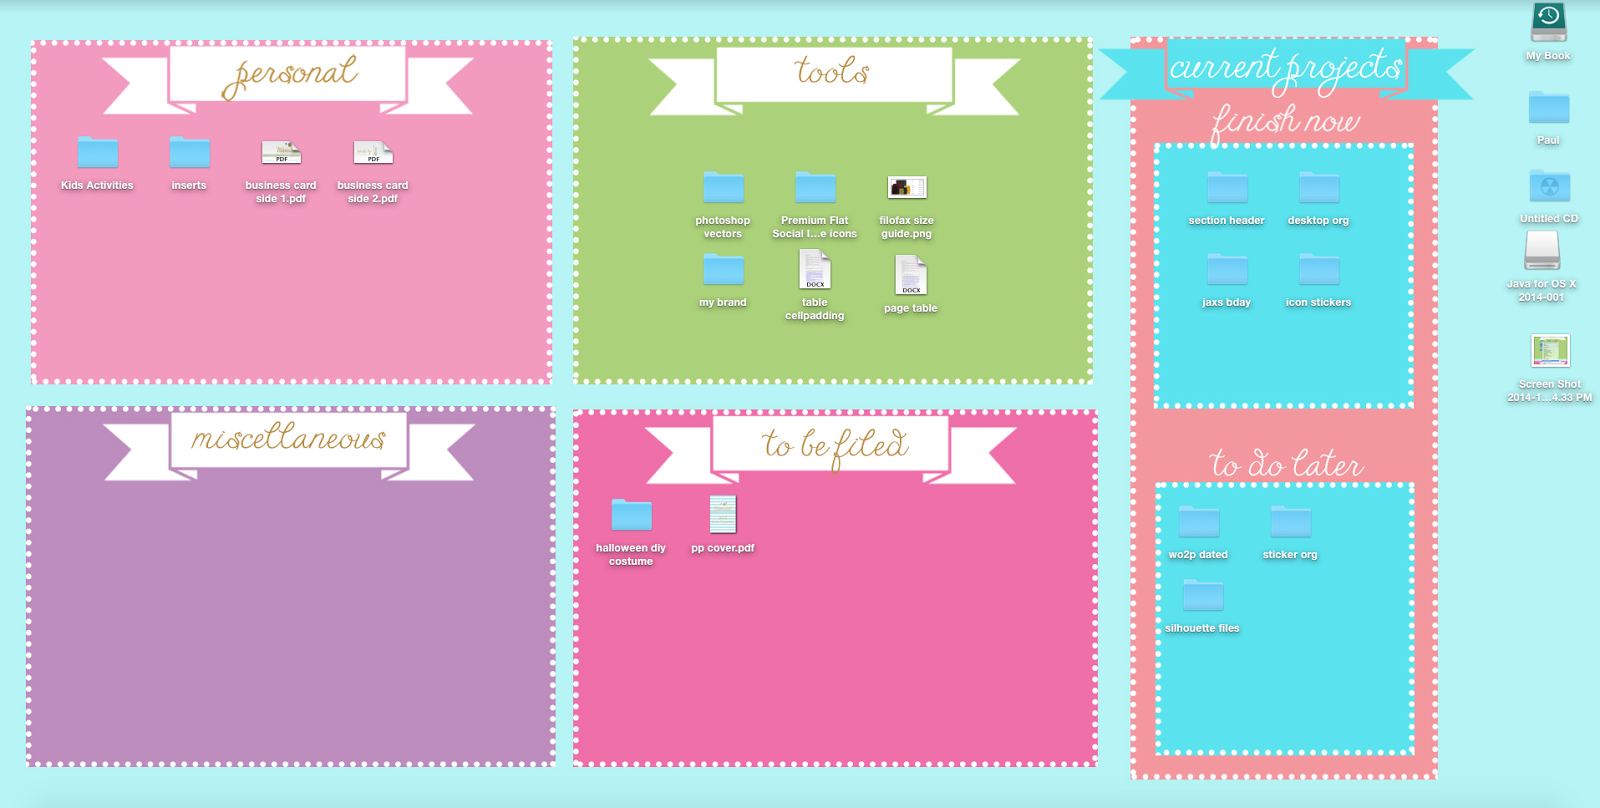 Cool Backgrounds For Computers That Move For Girls